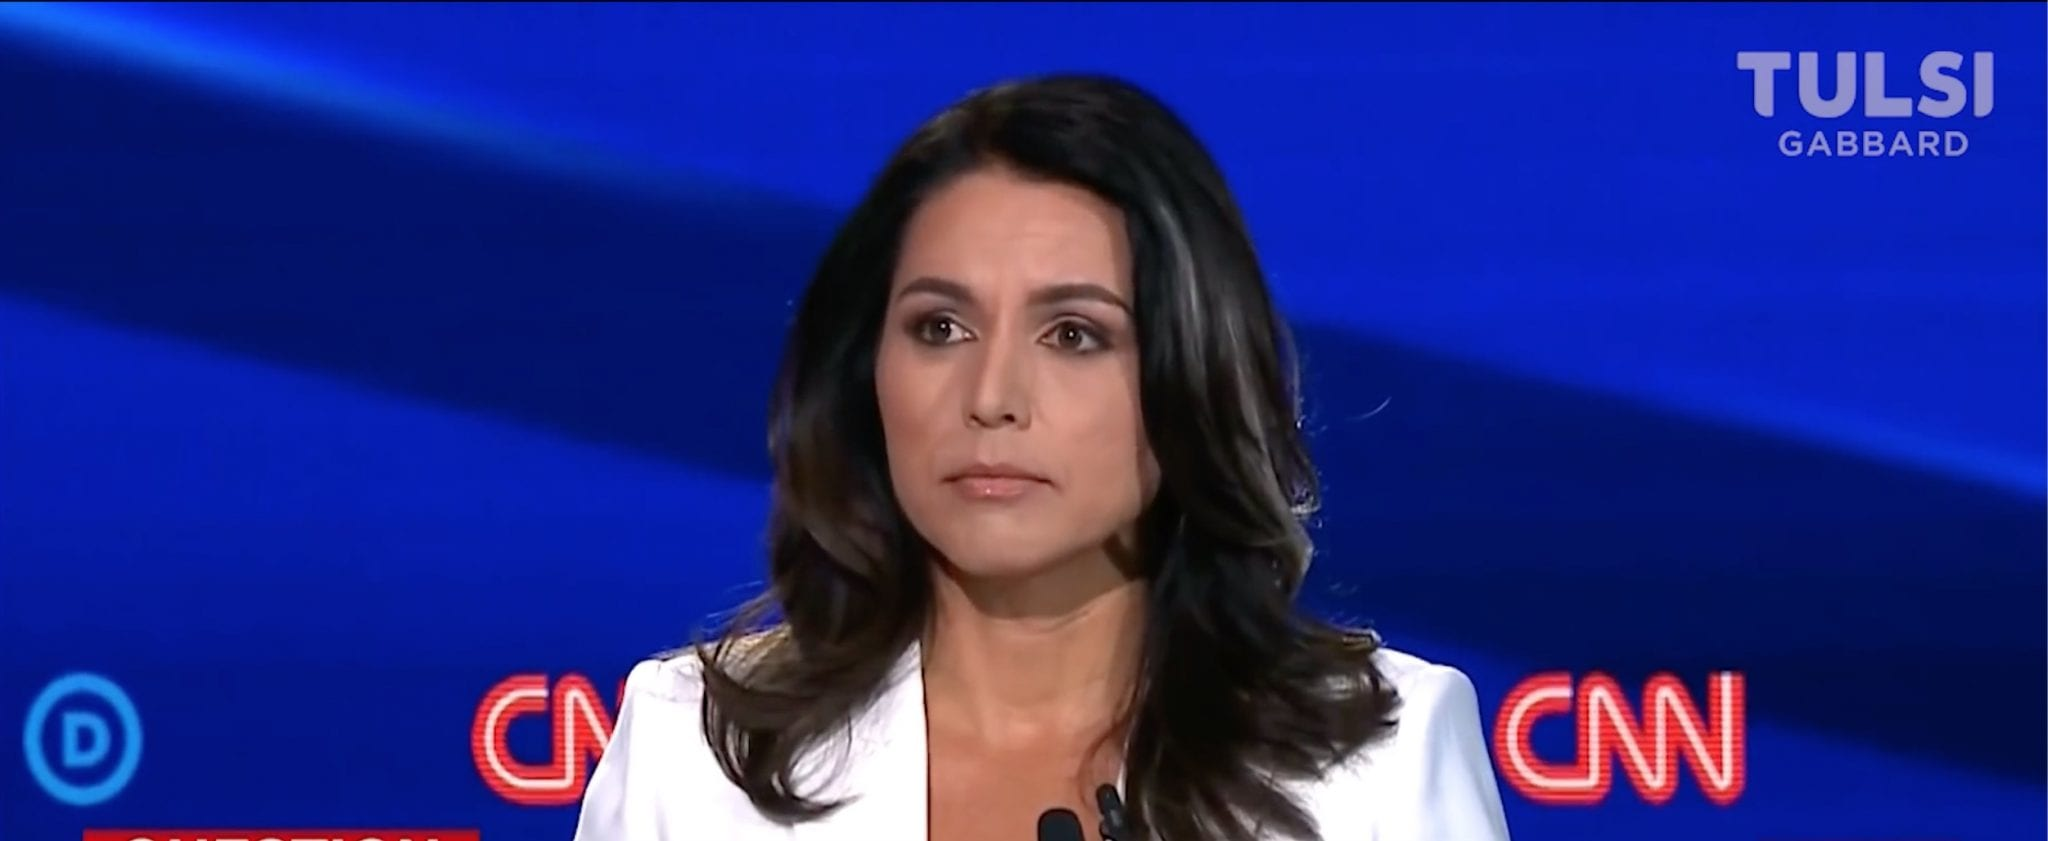 Tulsi Gabbard: Canary in the Democratic Coal Mine | The American Spectator | Politics Is Too Important To Be Taken Seriously.